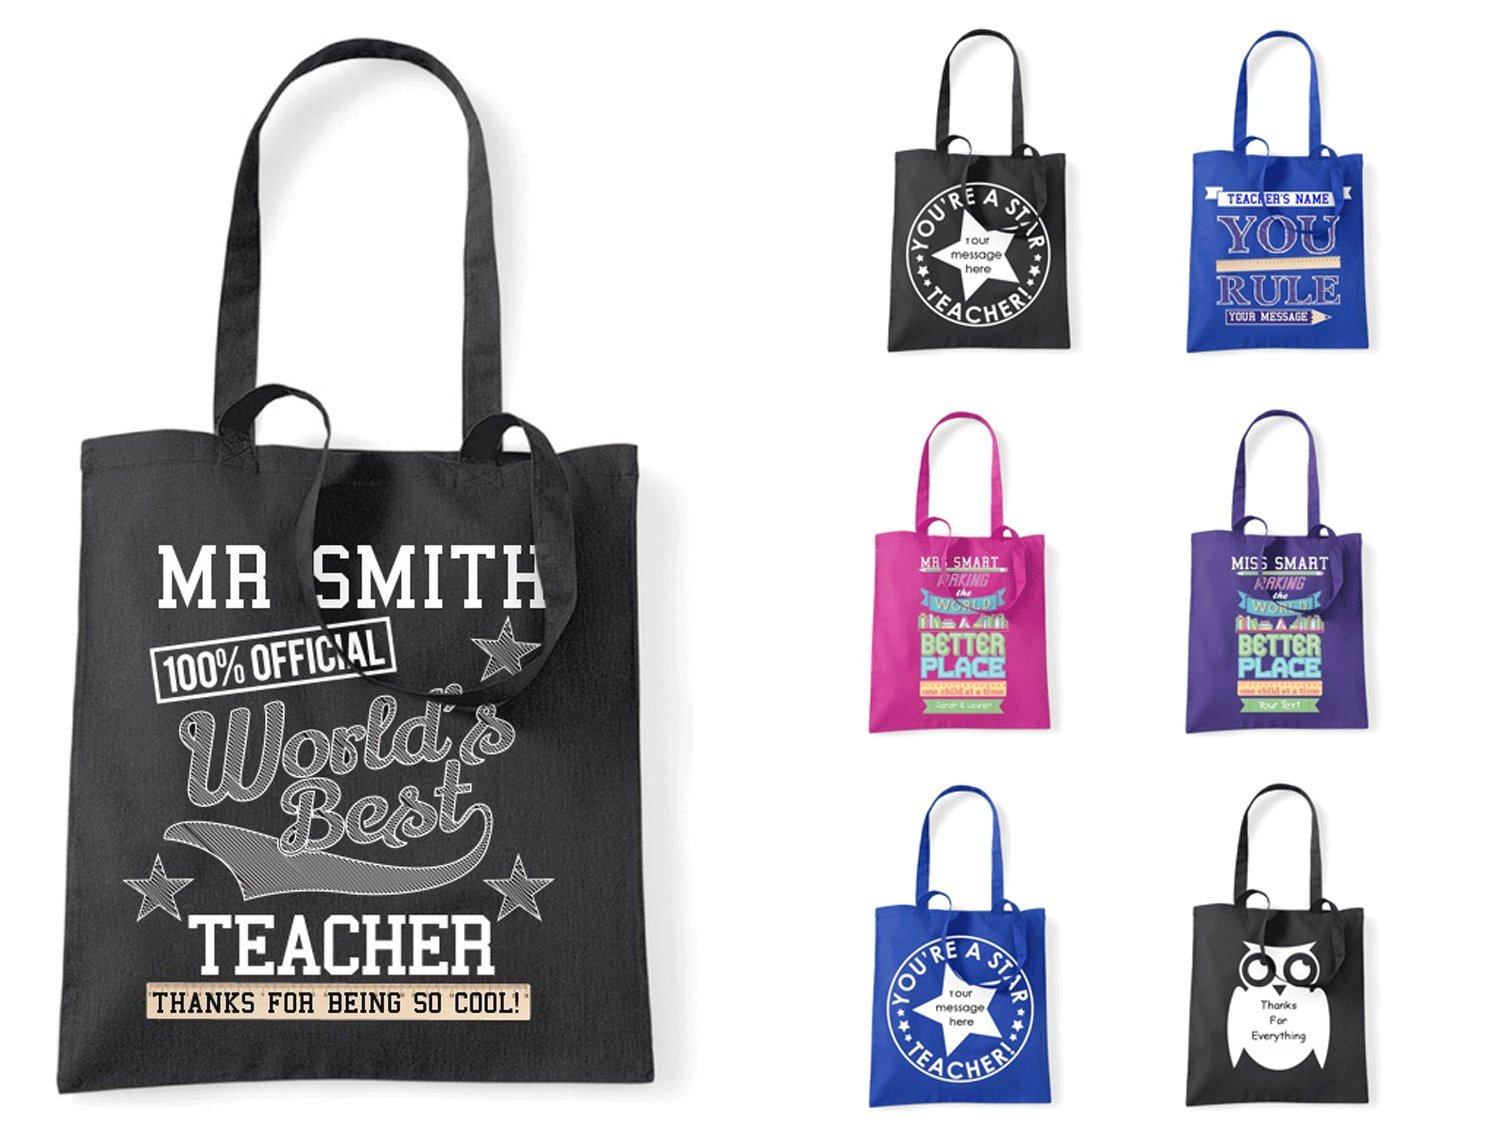 Bags for school teachers - Personalised Bag For Teachers Leaving Gift At School Amazon Co Uk Kitchen Home